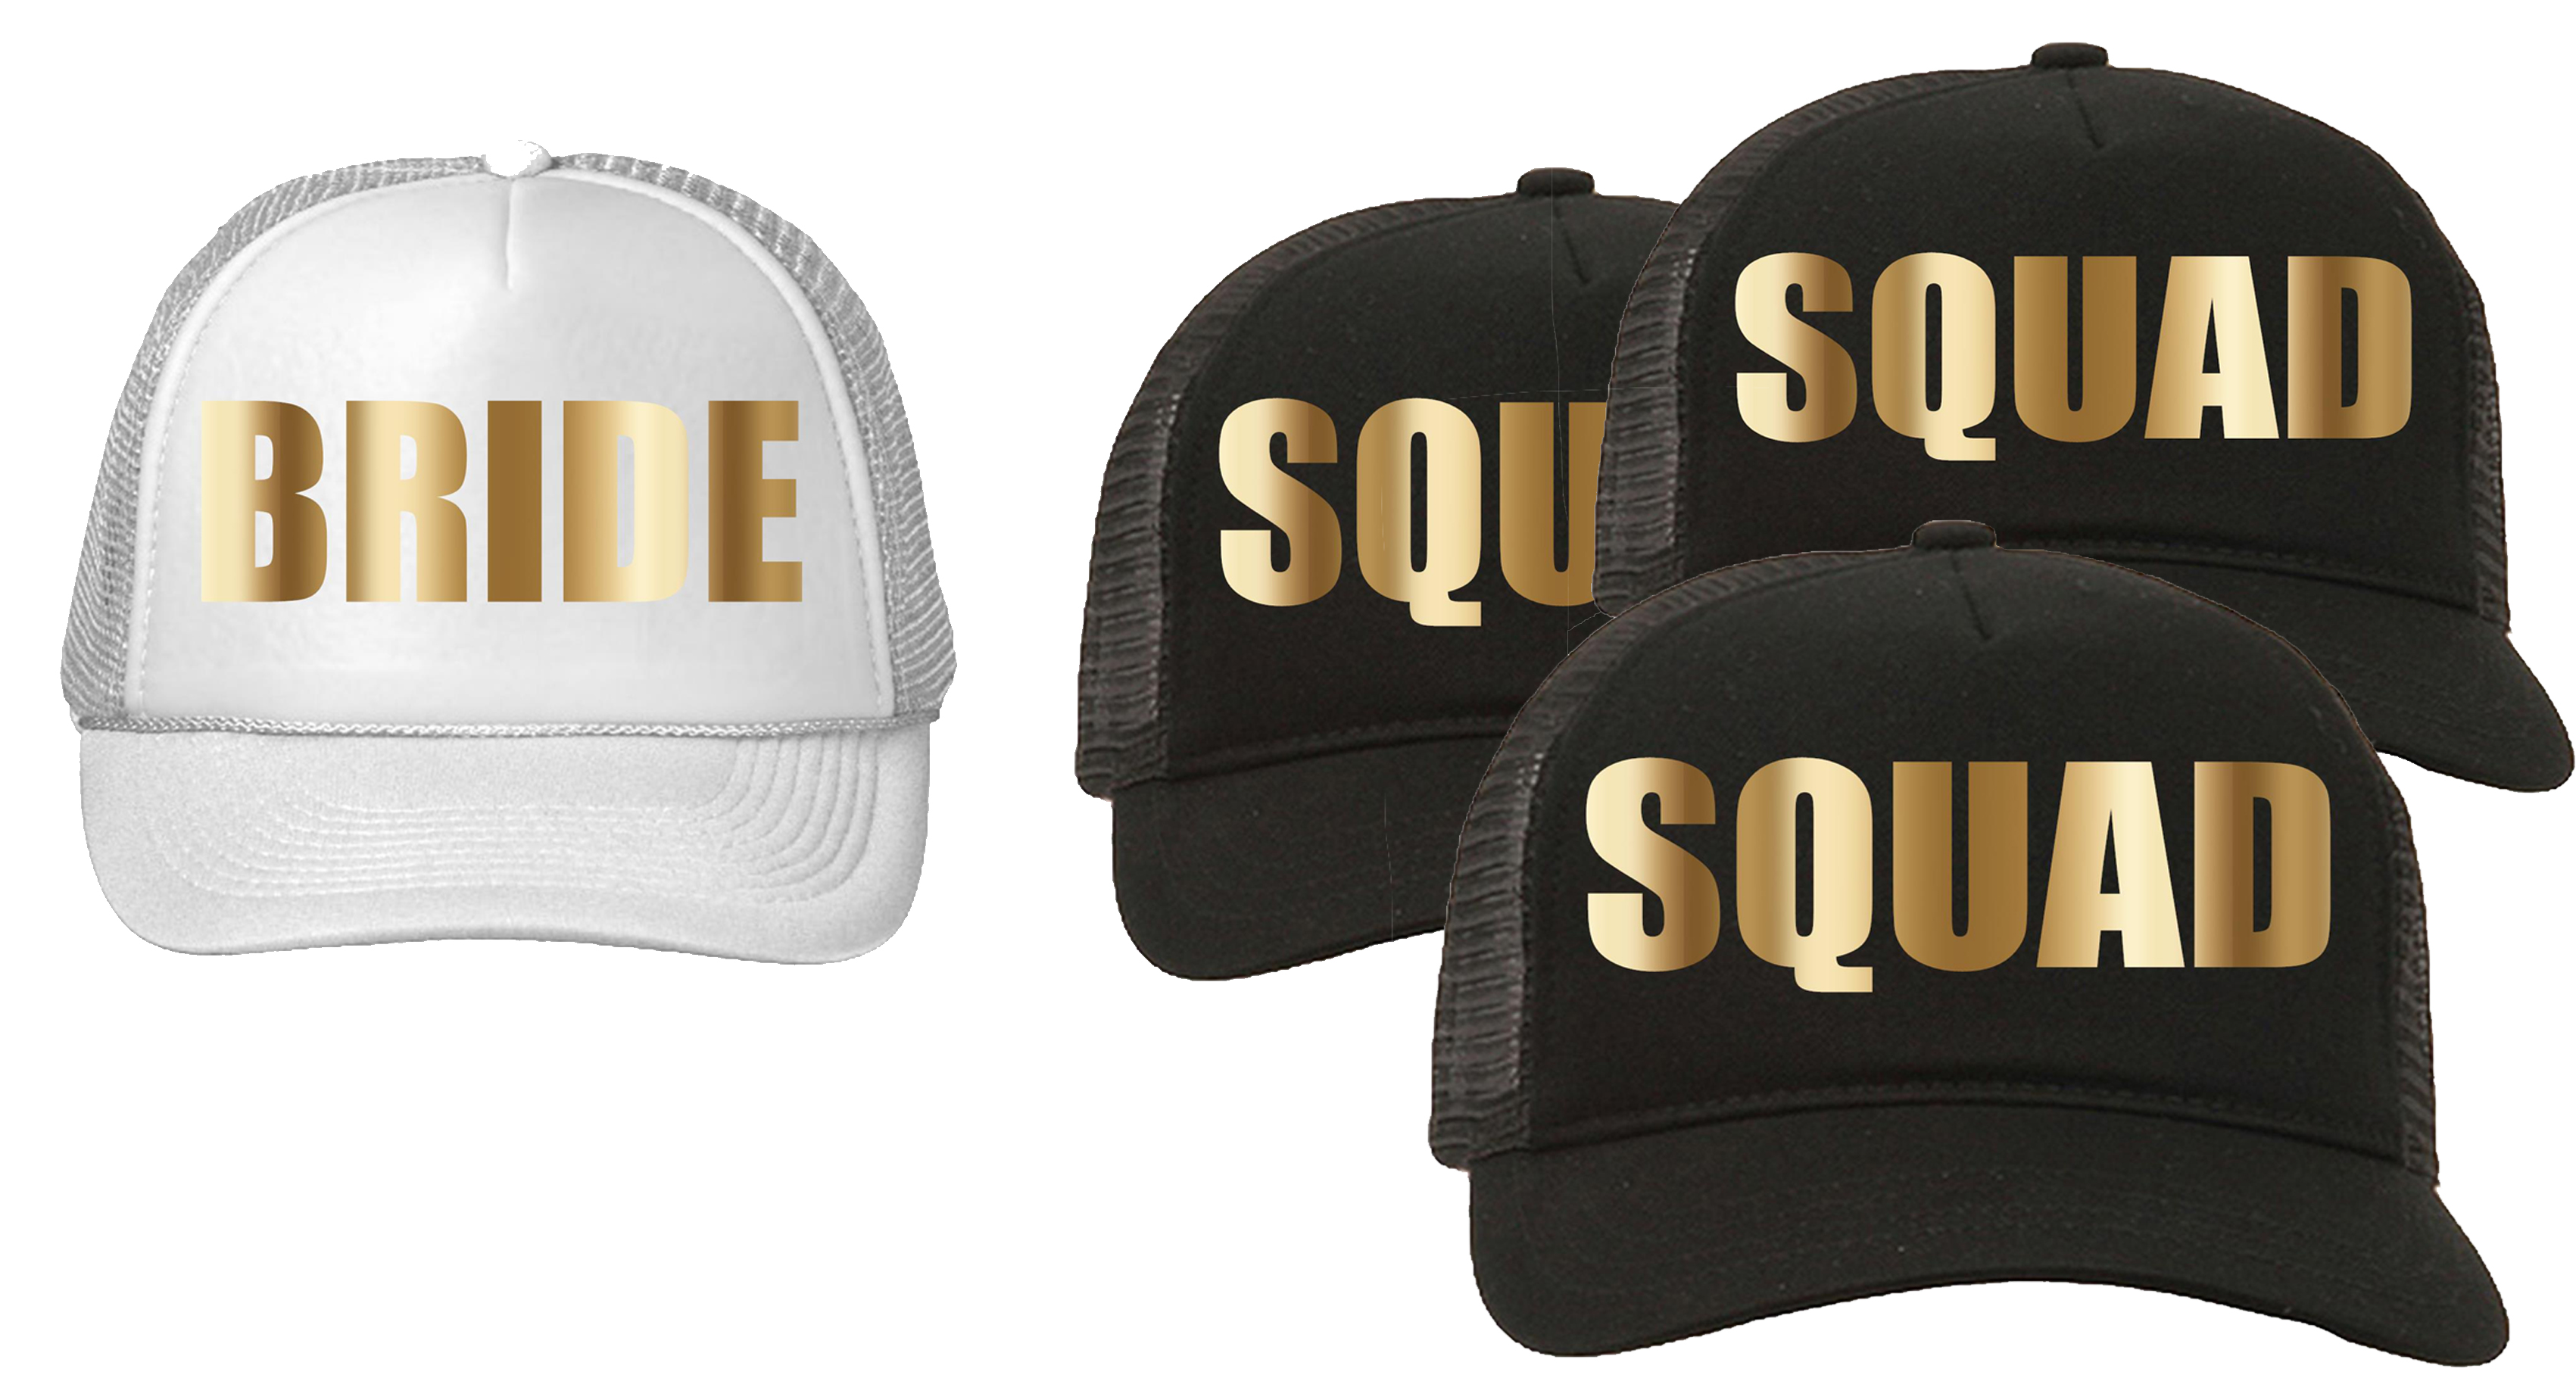 Trucker Hat Squad Bachelorette Party Wedding (4-Pack) 3-Black for the Squad 1-White  for the Bride - Walmart.com a2fd2267199a